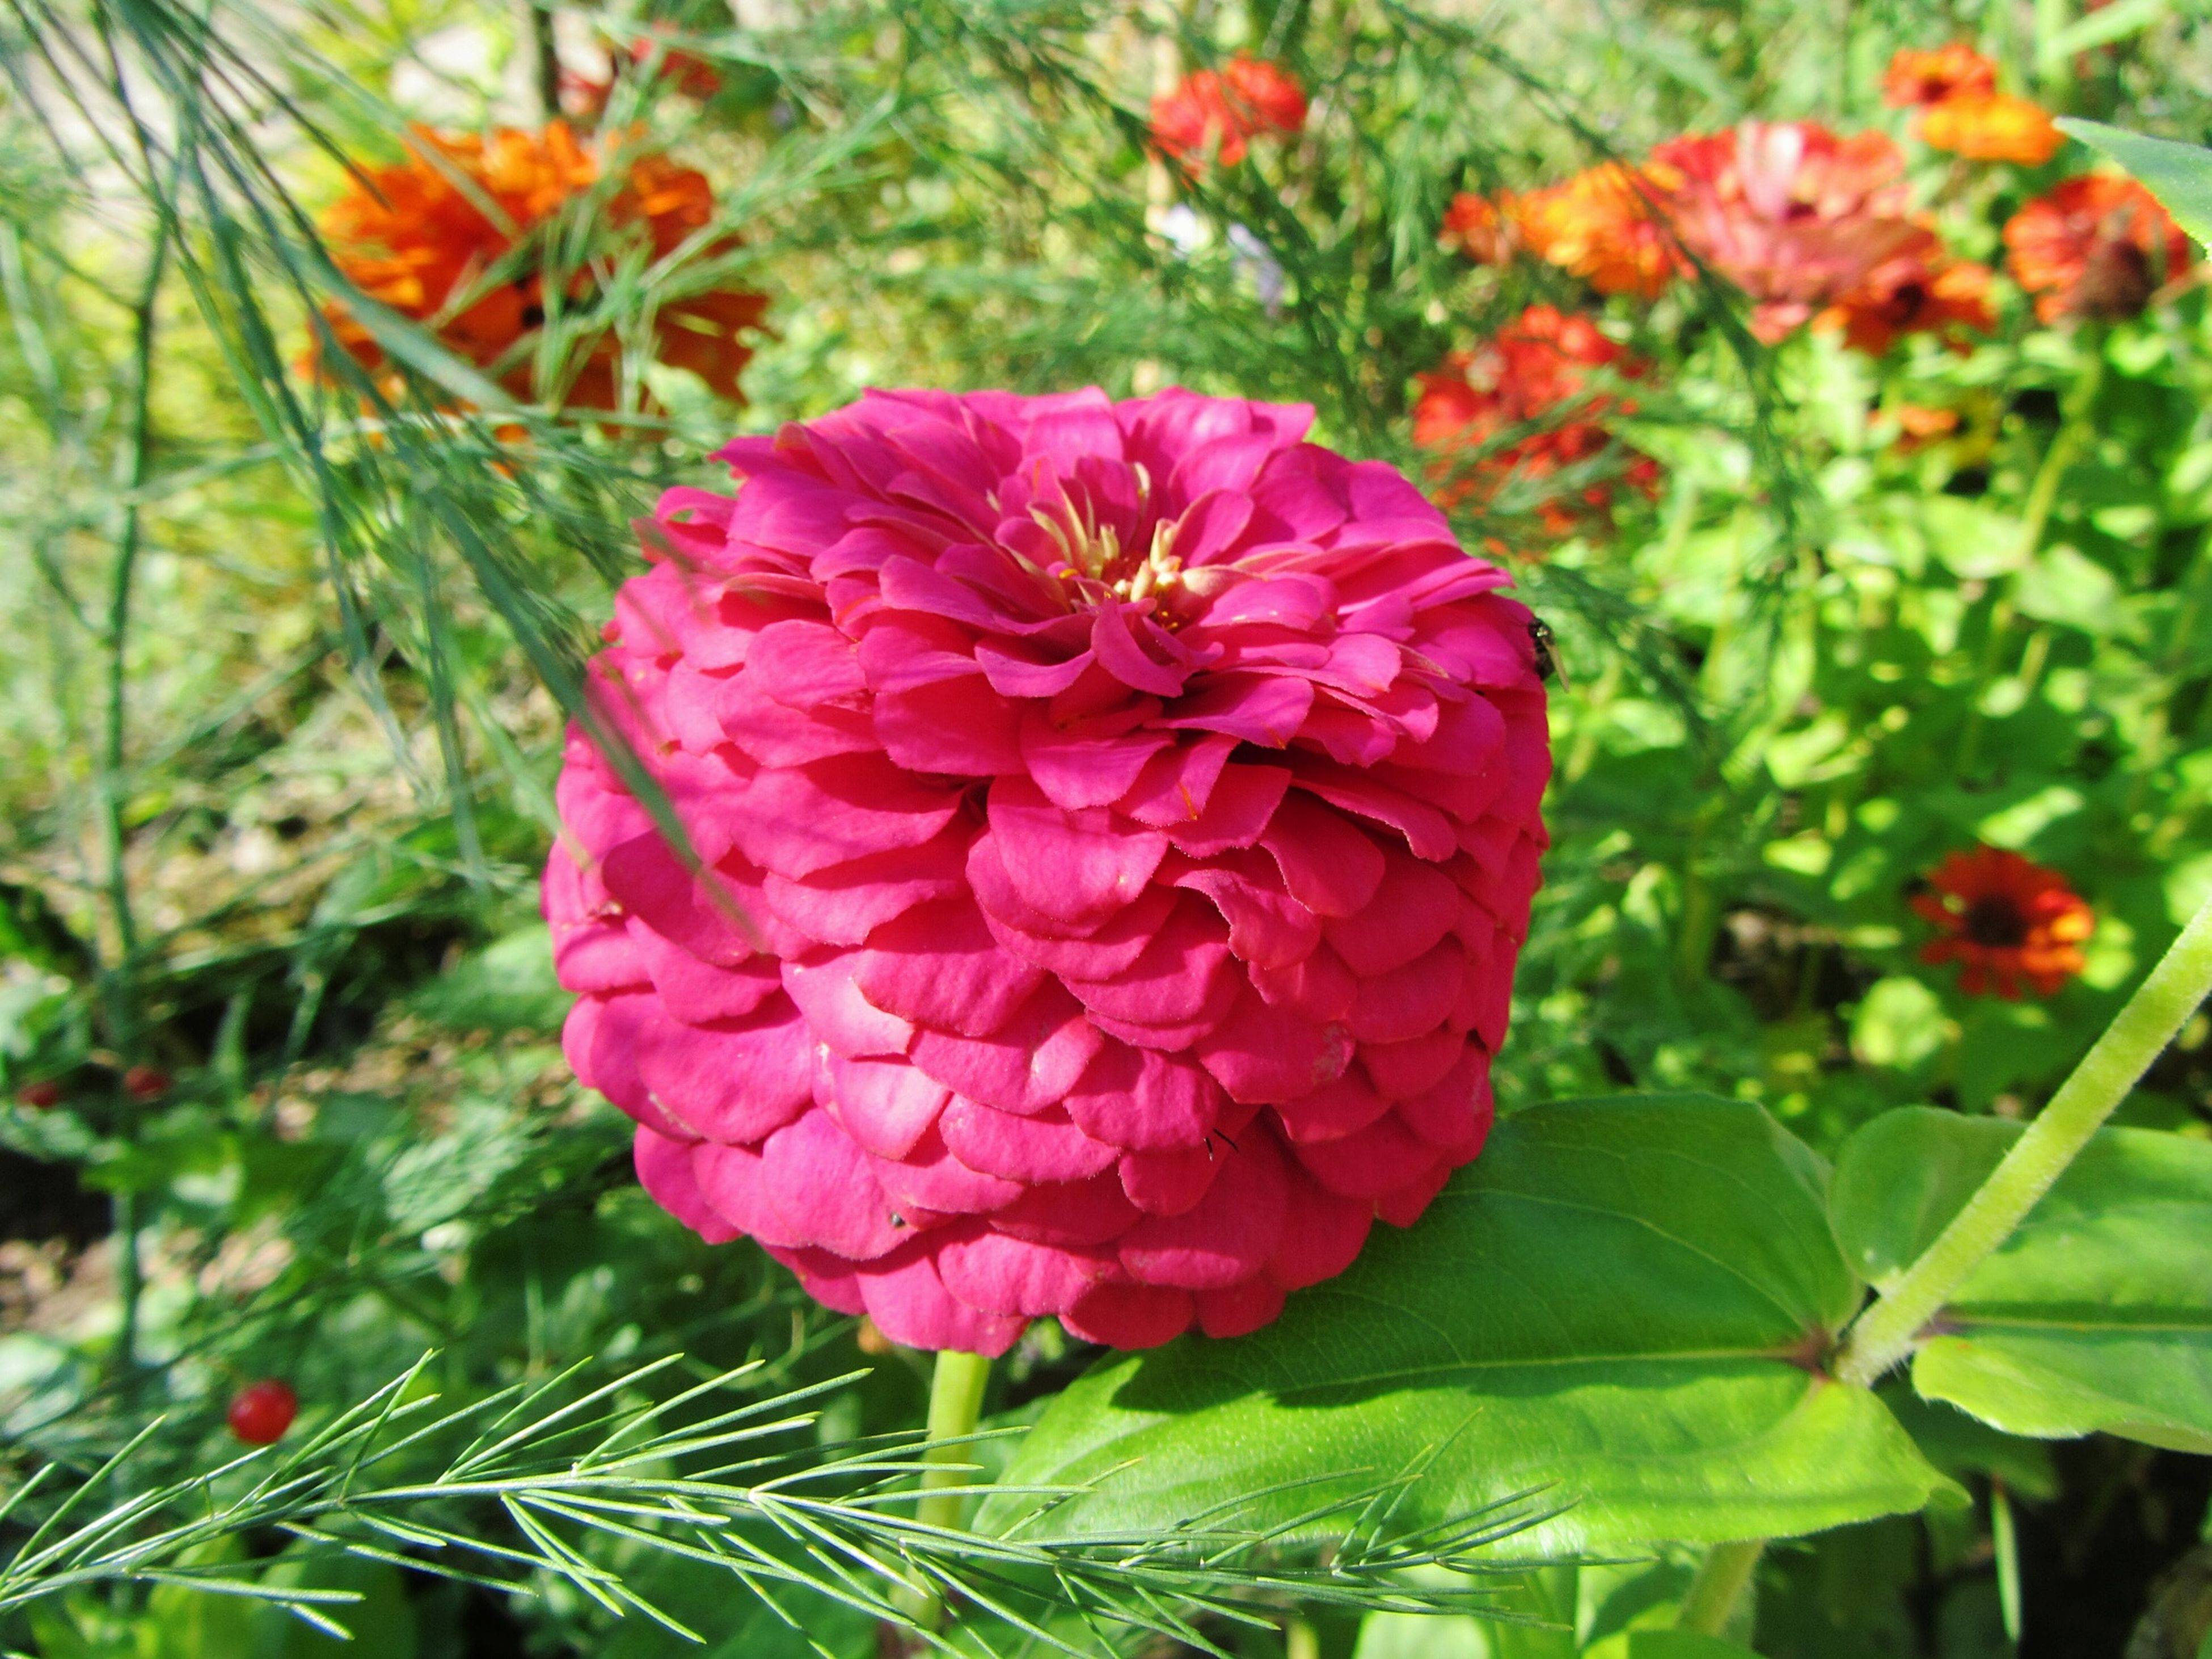 flower, freshness, growth, fragility, beauty in nature, petal, plant, nature, flower head, close-up, blooming, pink color, focus on foreground, leaf, green color, in bloom, red, blossom, bud, botany